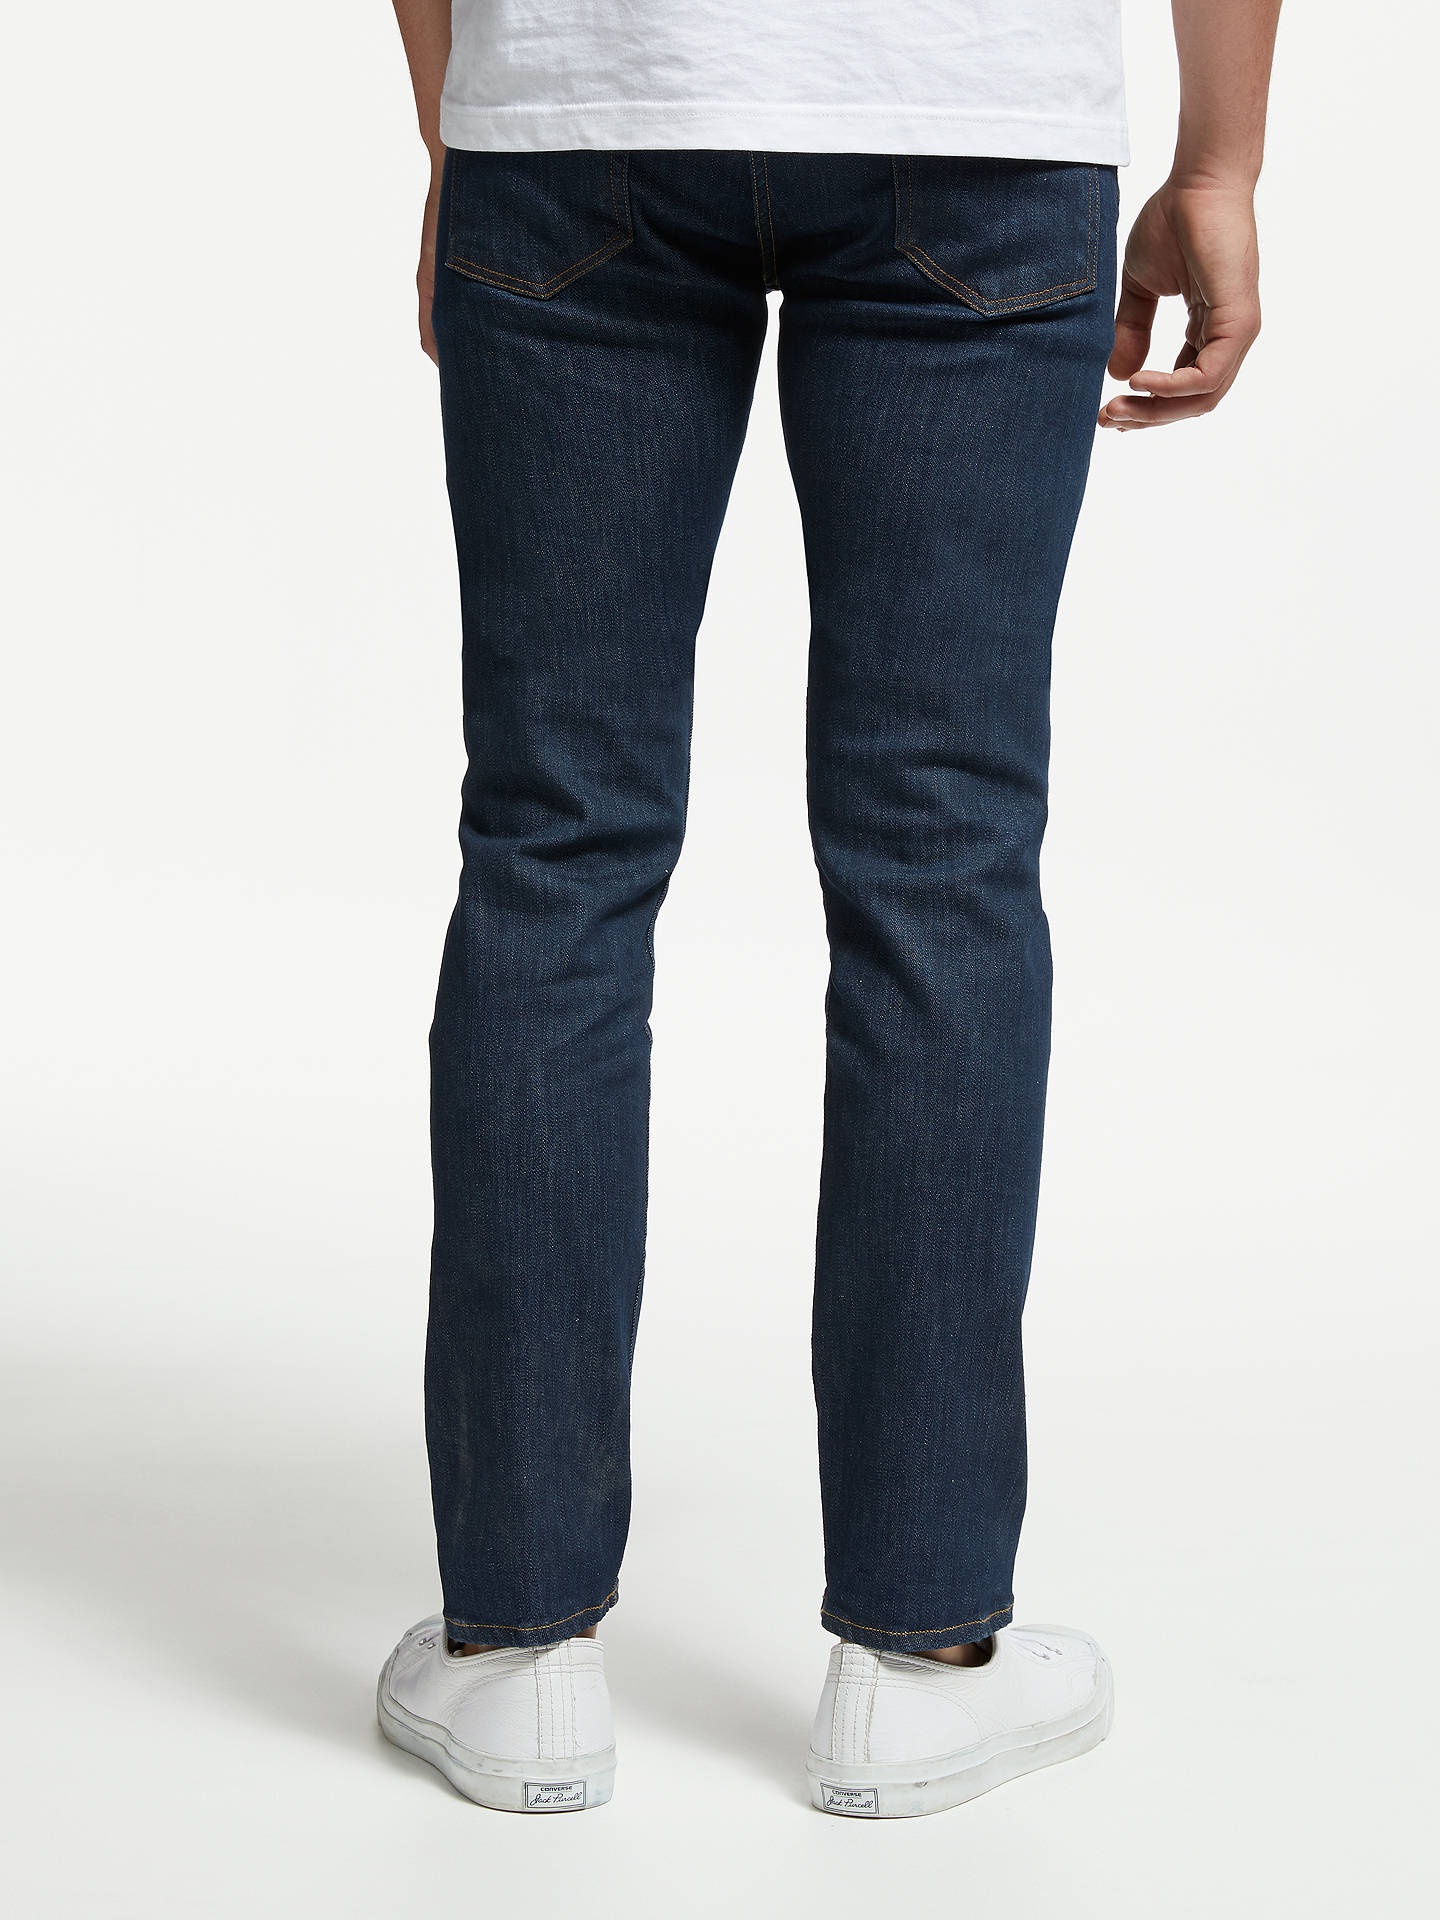 Buy PS Paul Smith Reflex Tapered Jeans, Blue, 34R Online at johnlewis.com